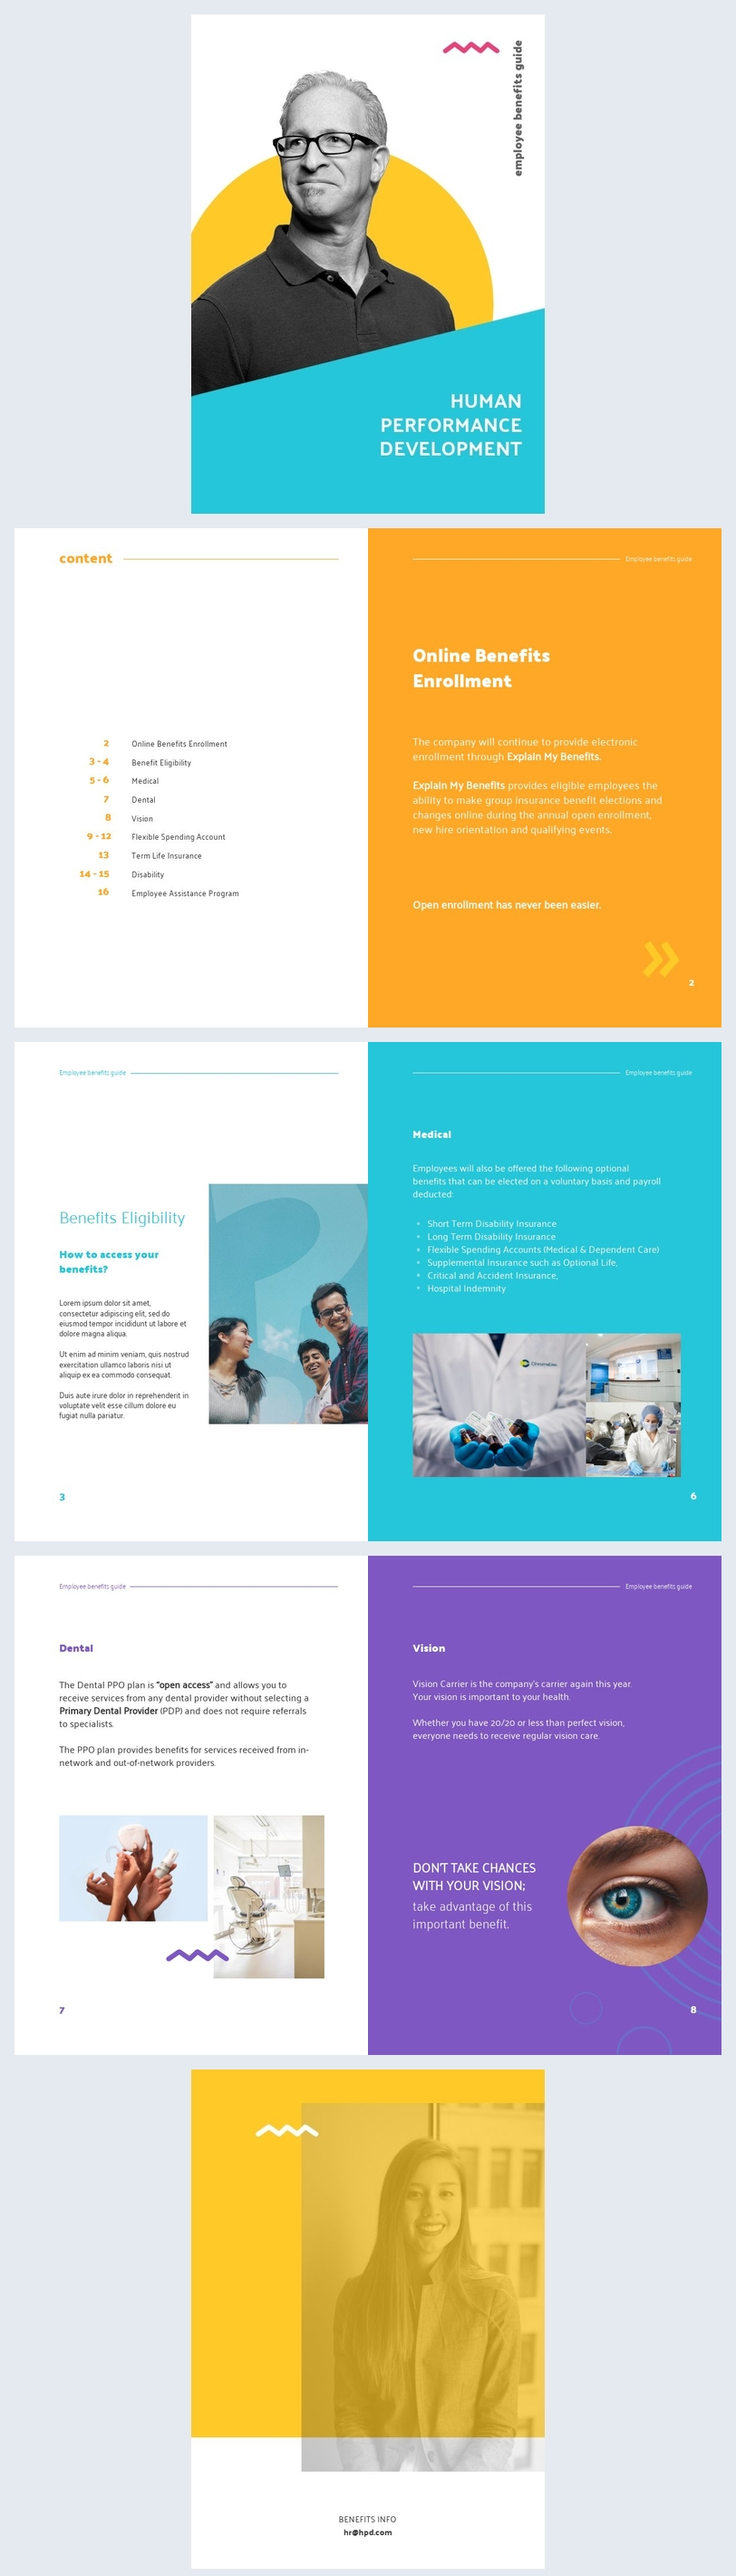 Employee Benefits Guide Template Example